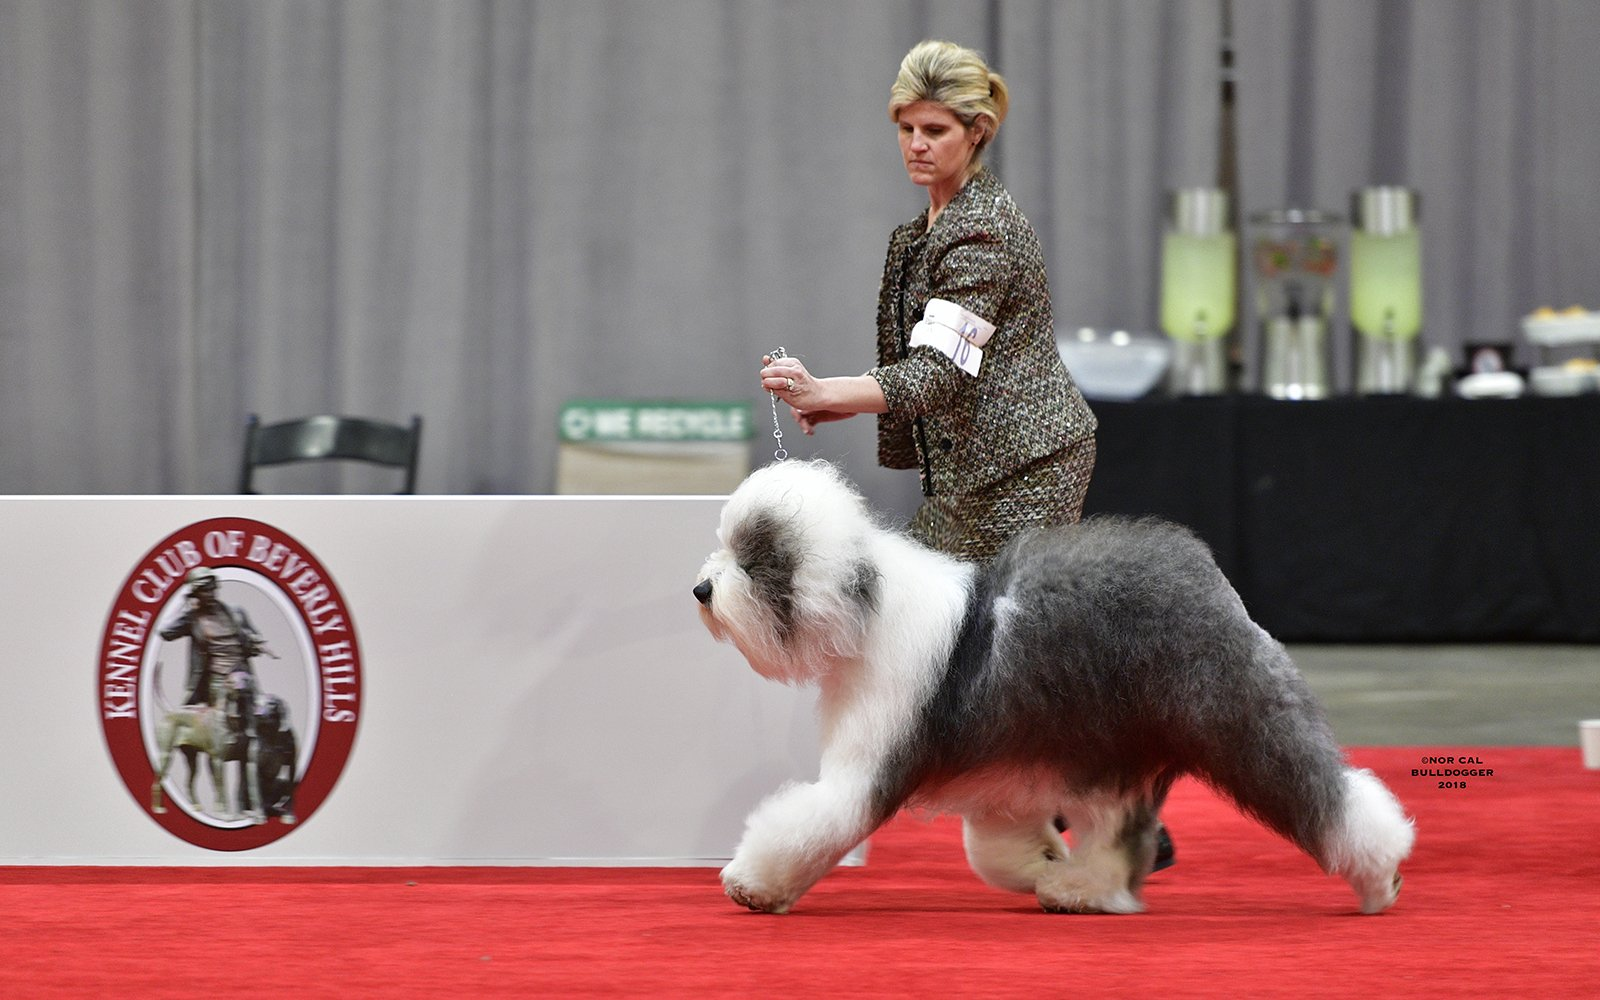 Example of an Old English Sheepdog.